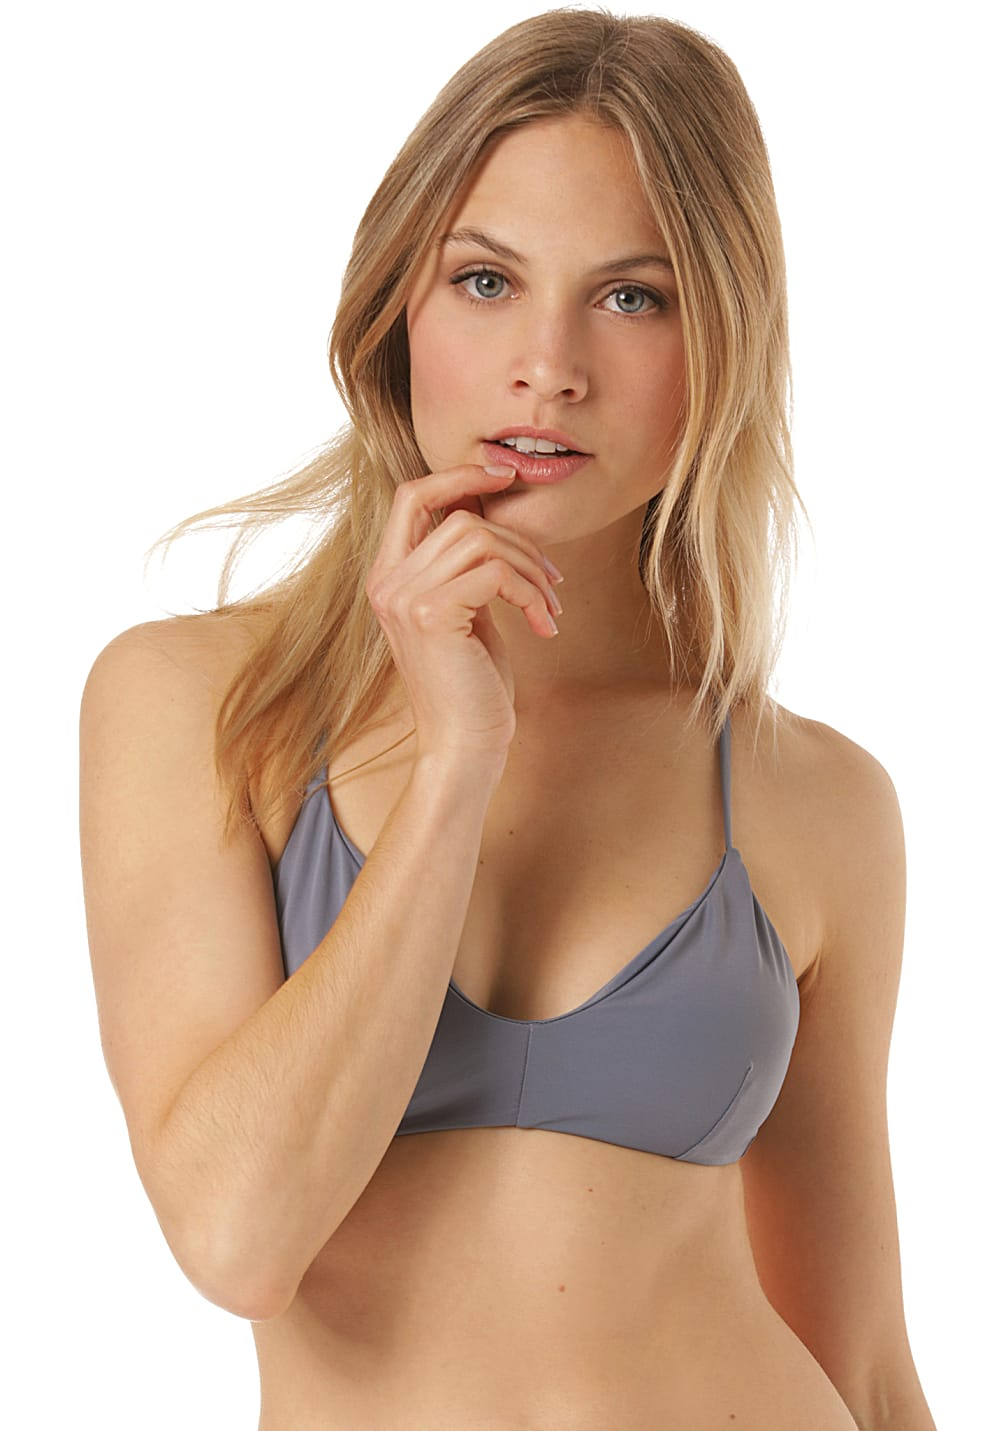 Bademode - RVCA Solid Cross Back Bikini Oberteil für Damen Blau  - Onlineshop Planet Sports